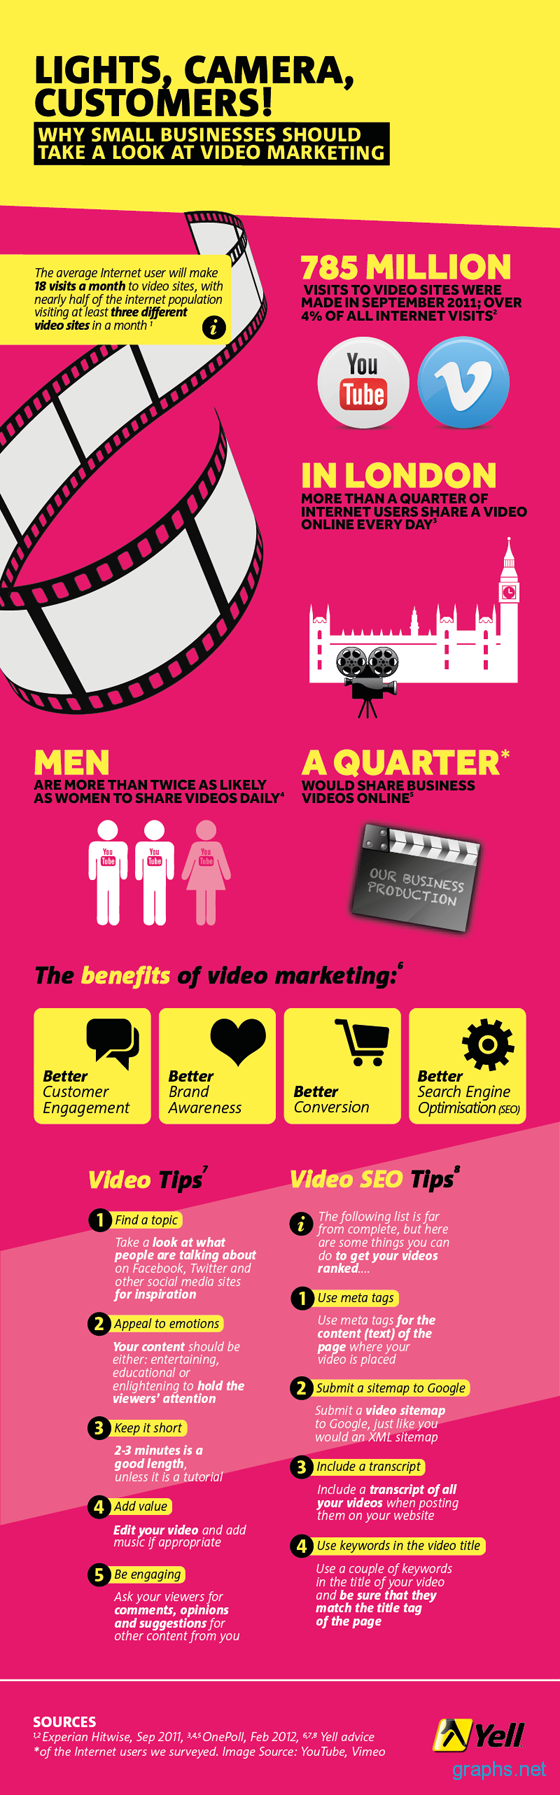 Benefits and Tips of Video Marketing